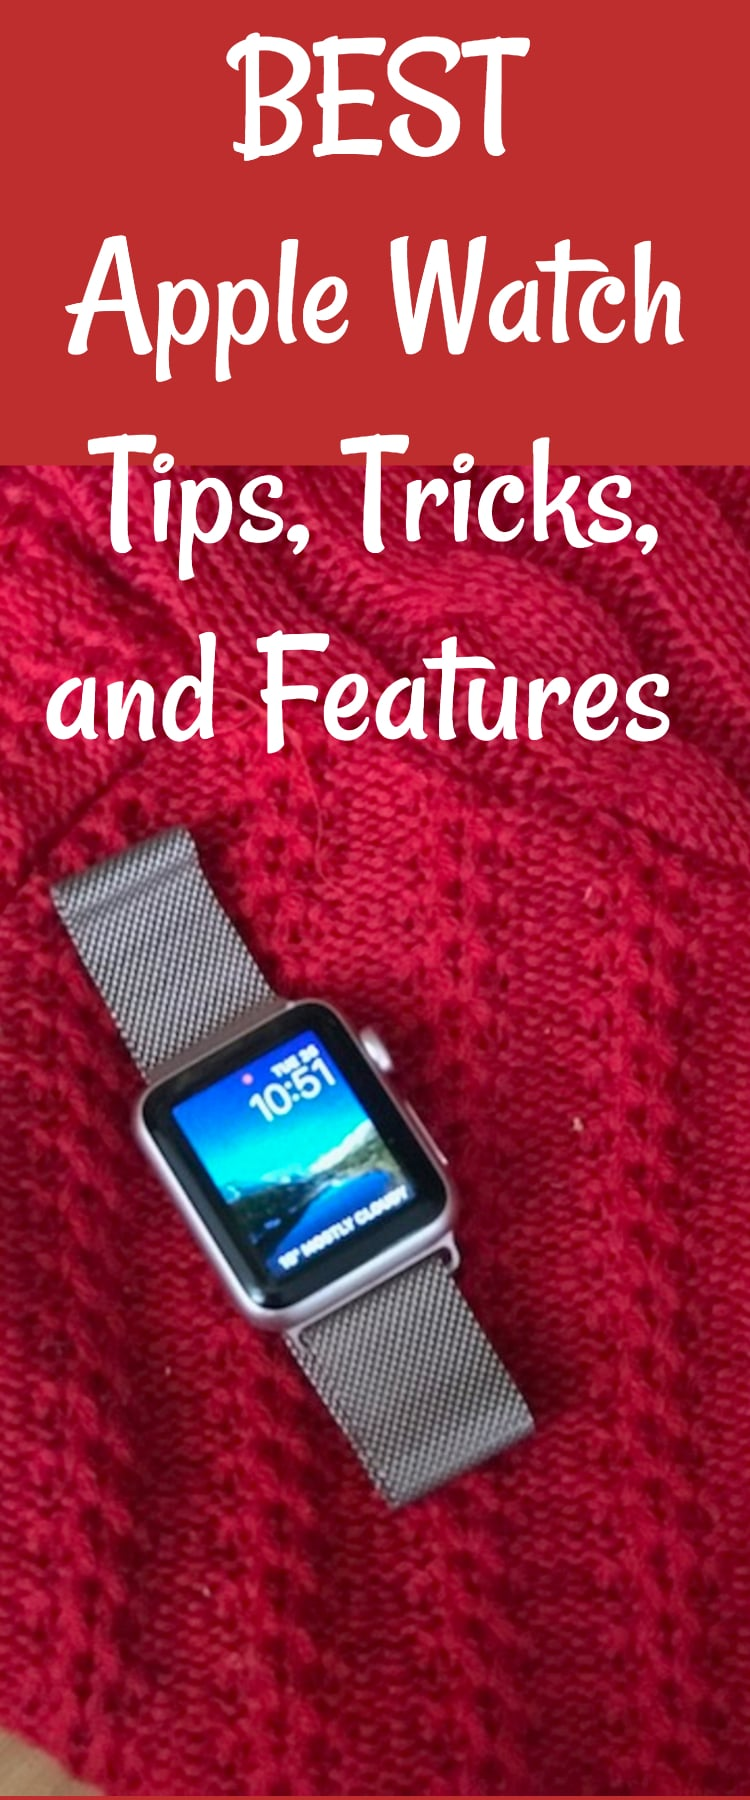 Apple Watch Tips / Apple Watch Features / Apple Watch iOS / Fitness Tracker / Fitness via @clarkscondensed